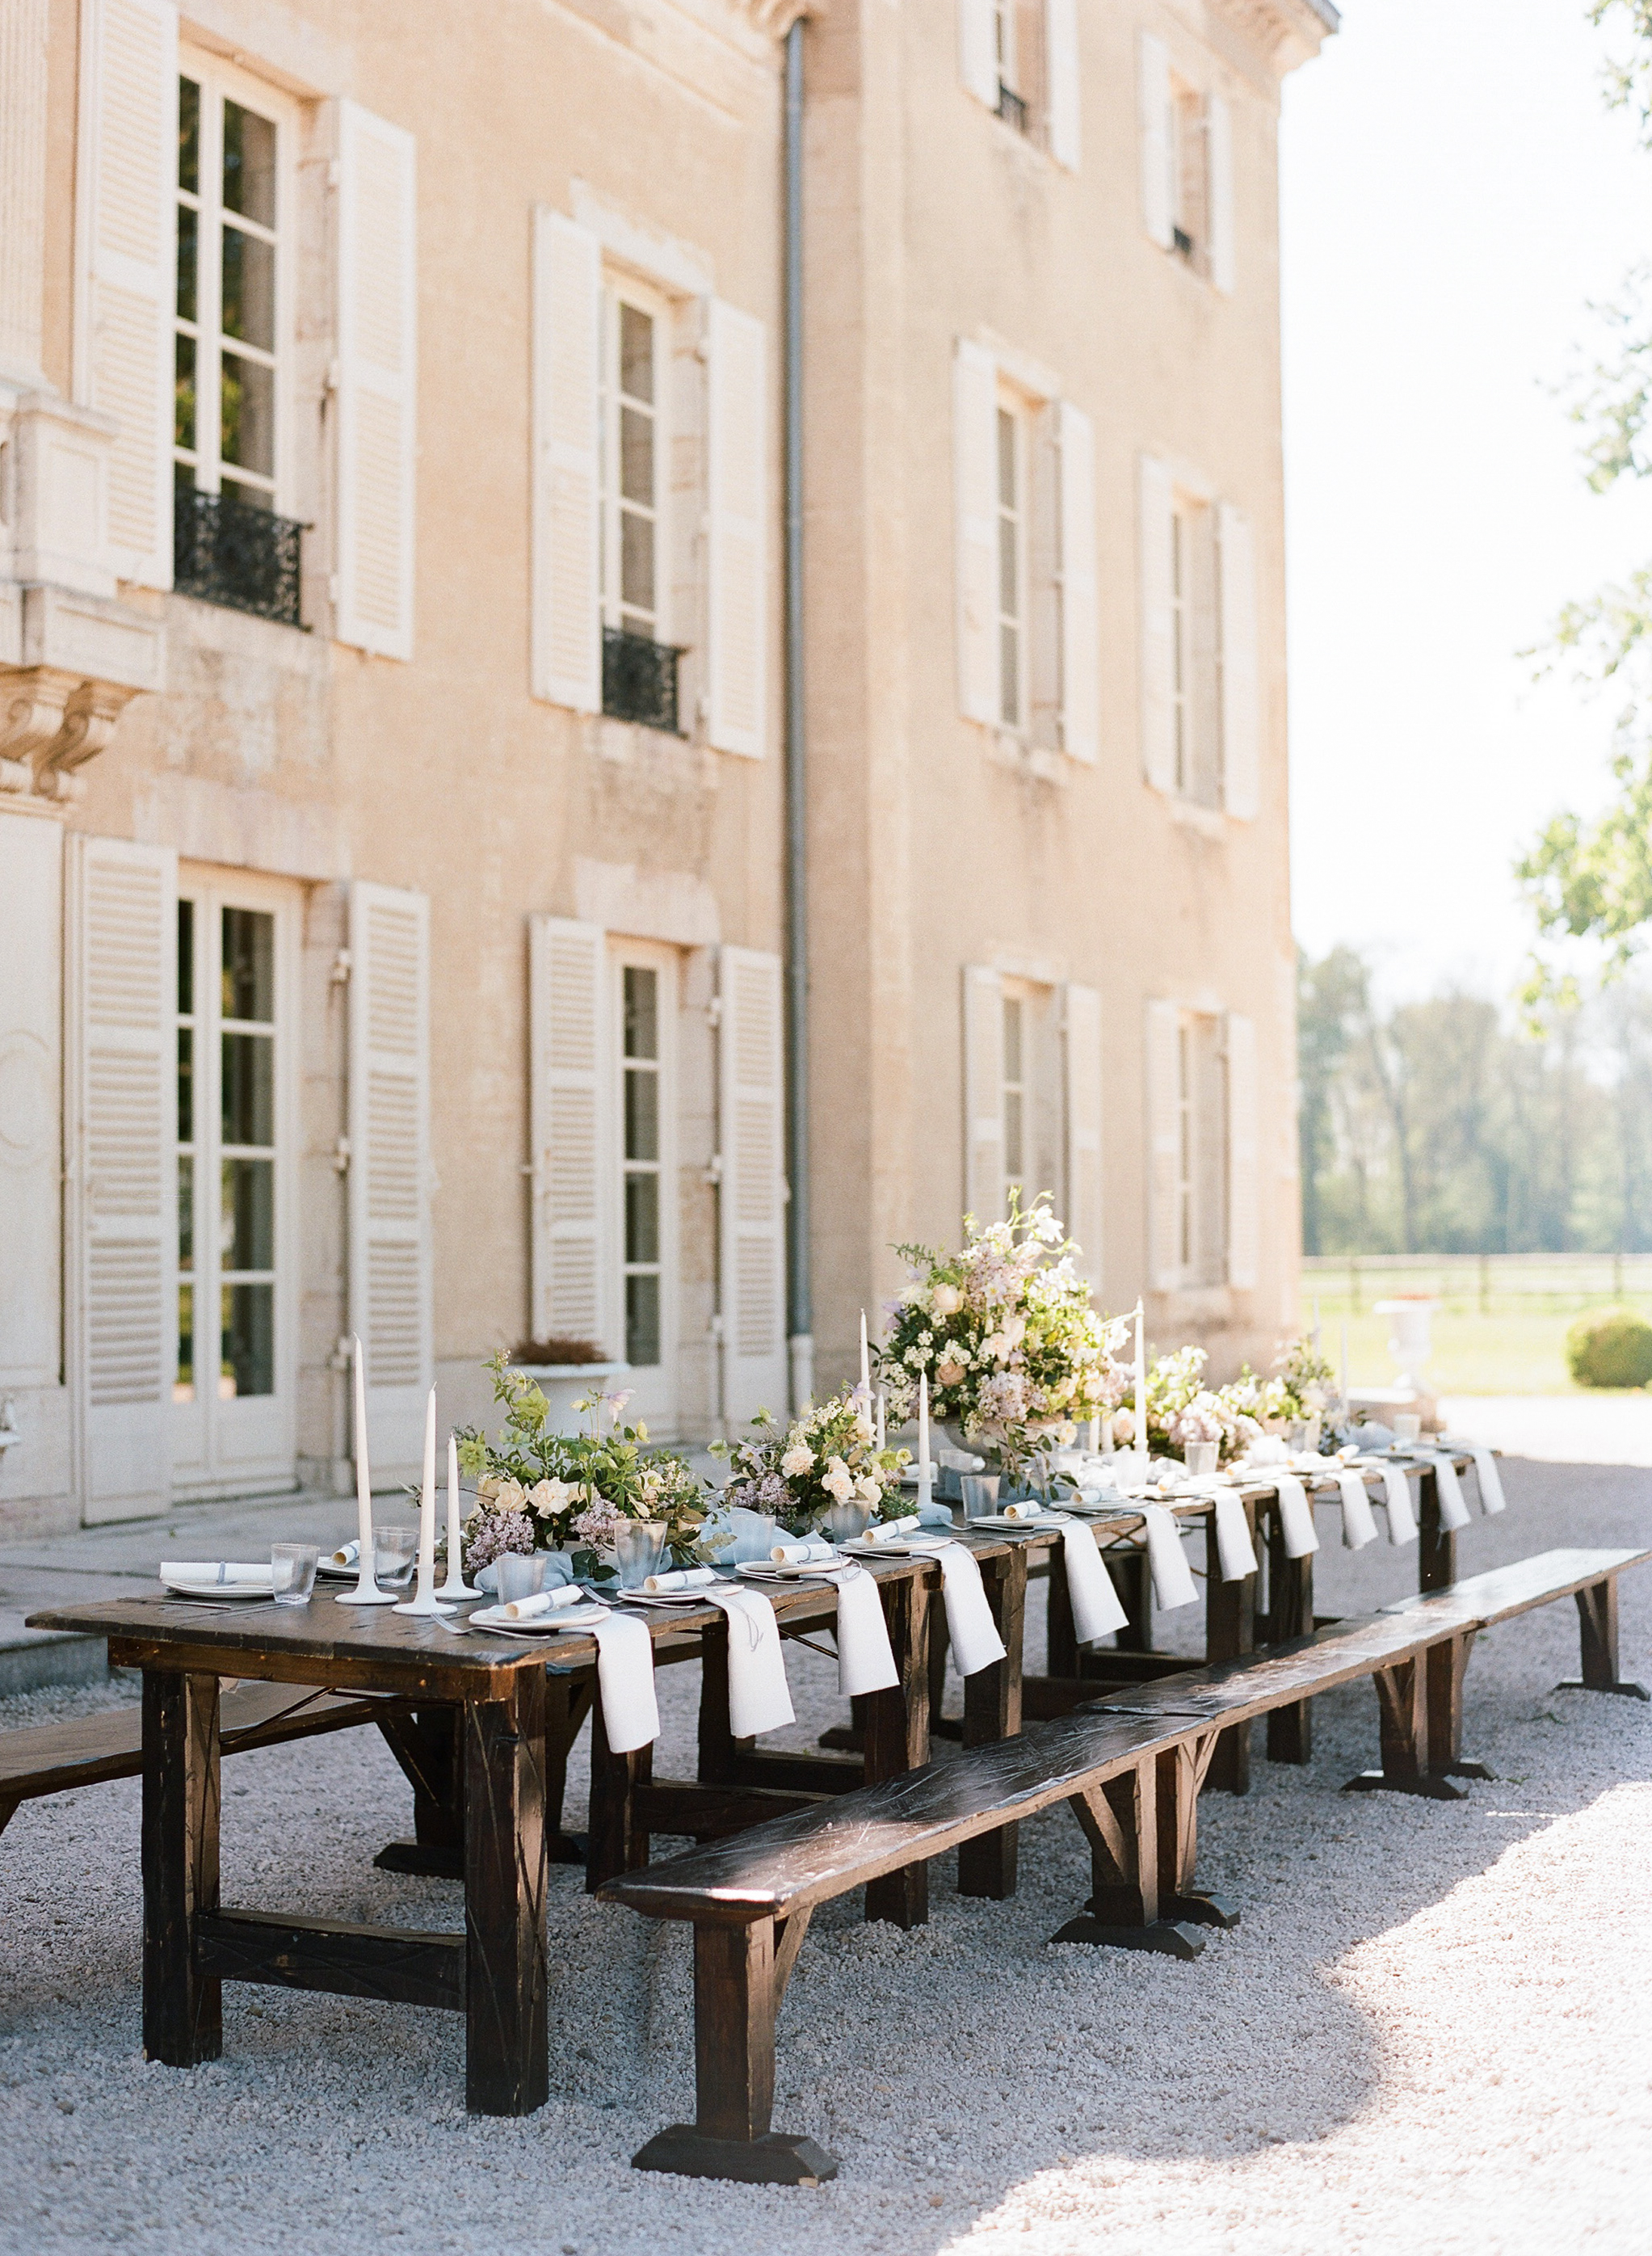 Rustic wood reception table at the 2017 Workshop at Chateau de Varennes; Sylvie Gil Photography